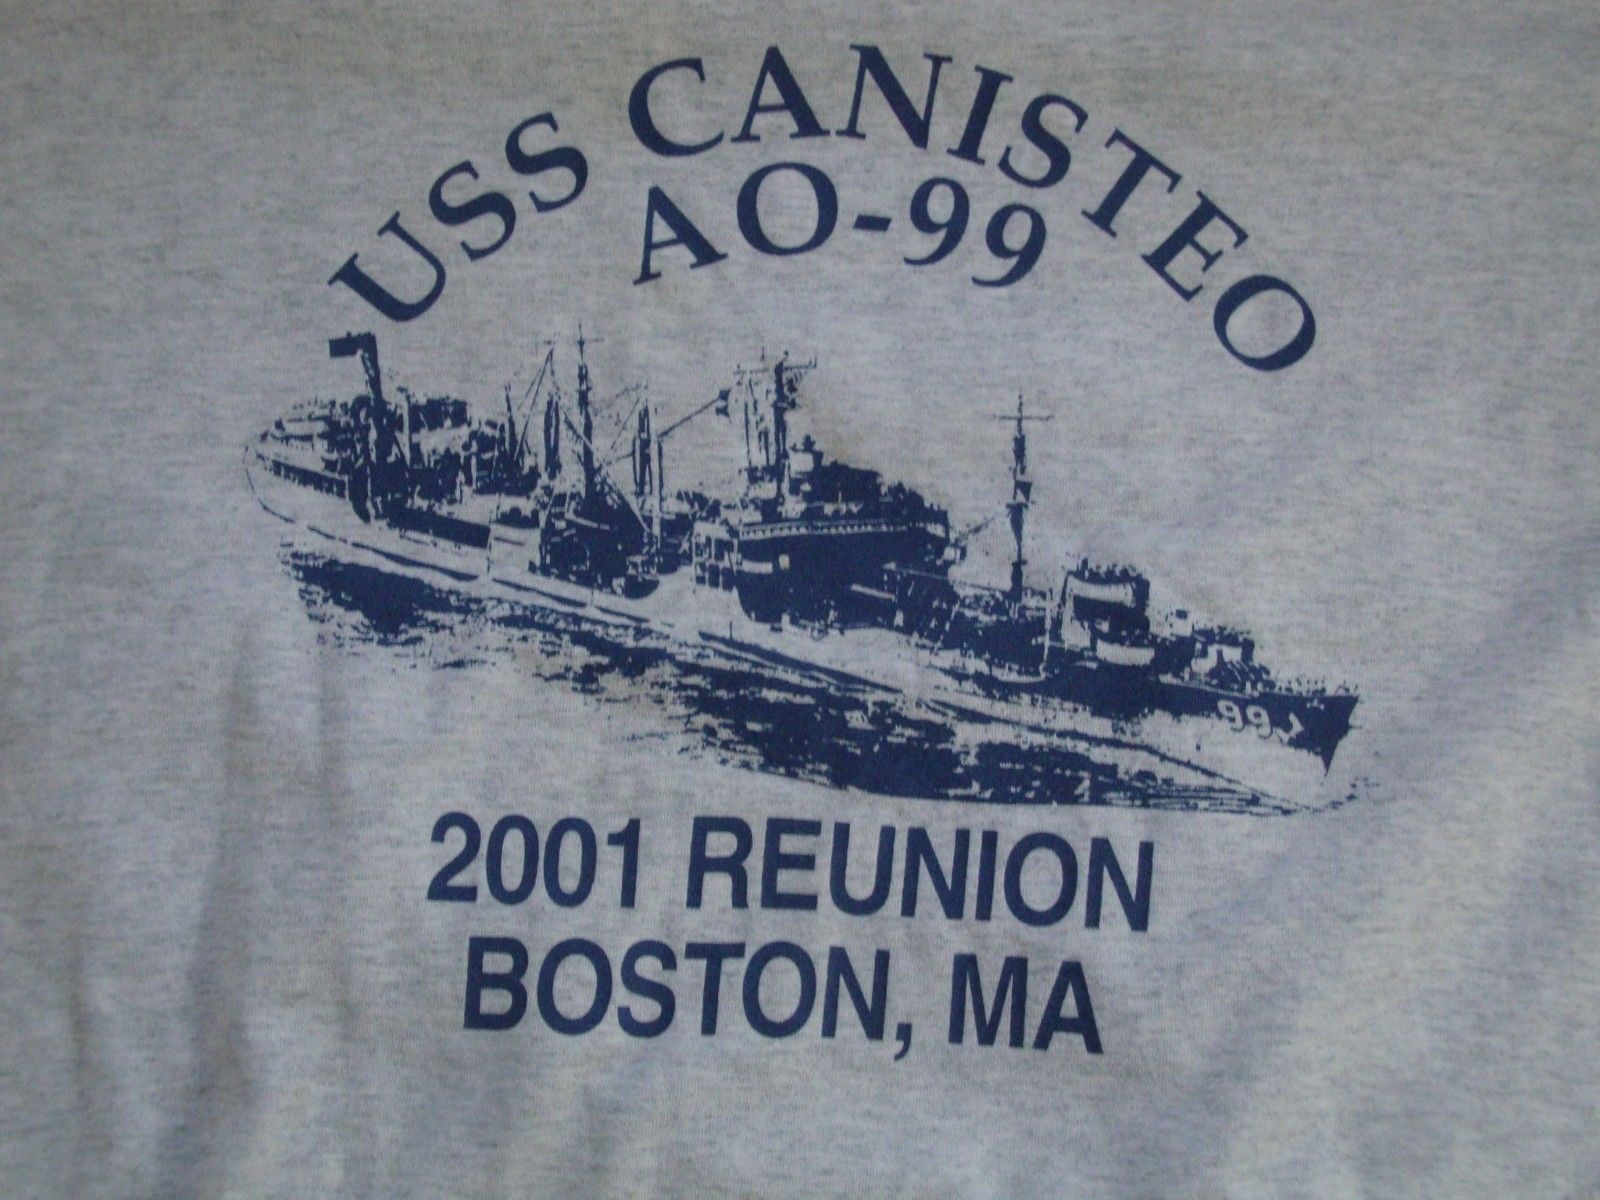 Primary image for USS Canisteo AO-99 Navy 2001 Reunion Boston, MA Grey T Shirt Men's Size XL